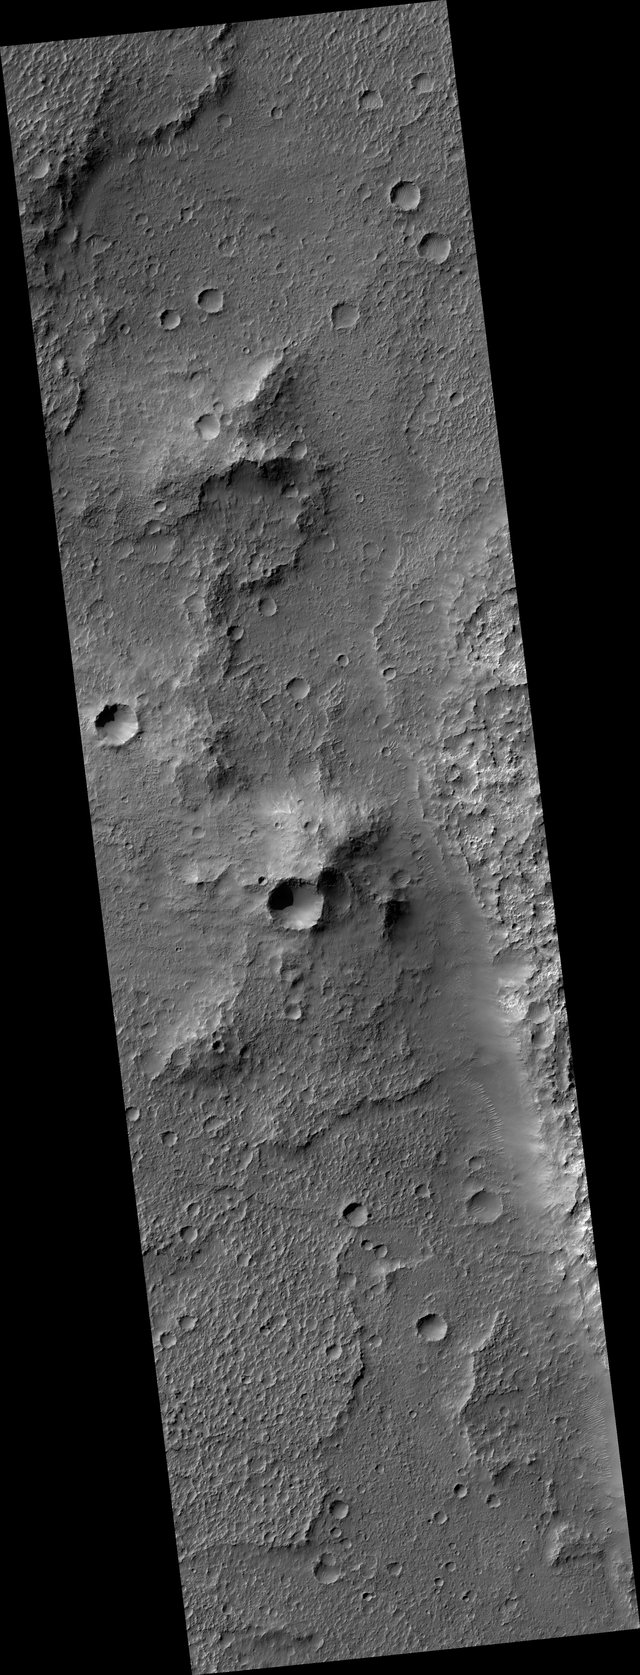 Larger image for PIA20661